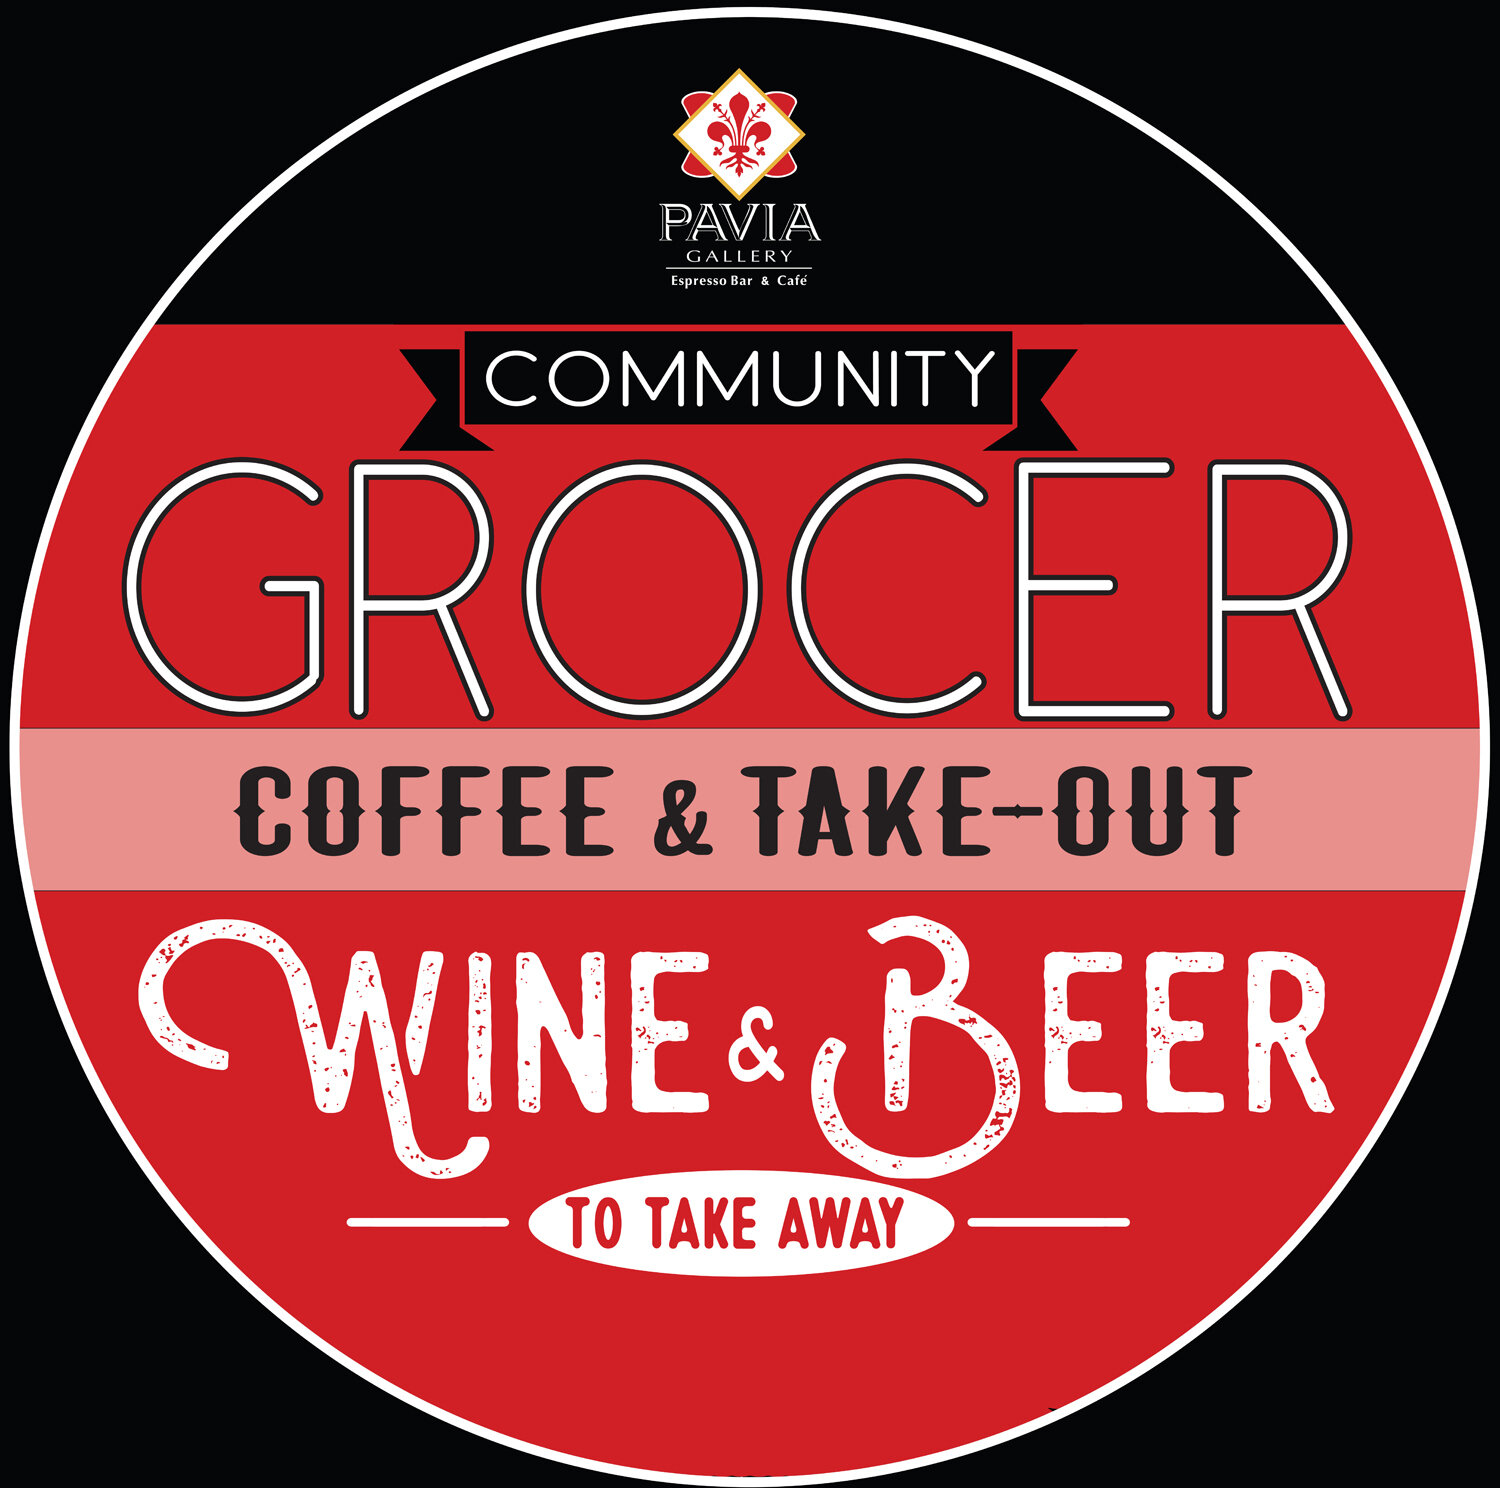 PAVIA: Community Grocer | Coffee & Take-Out | Wine & Beer